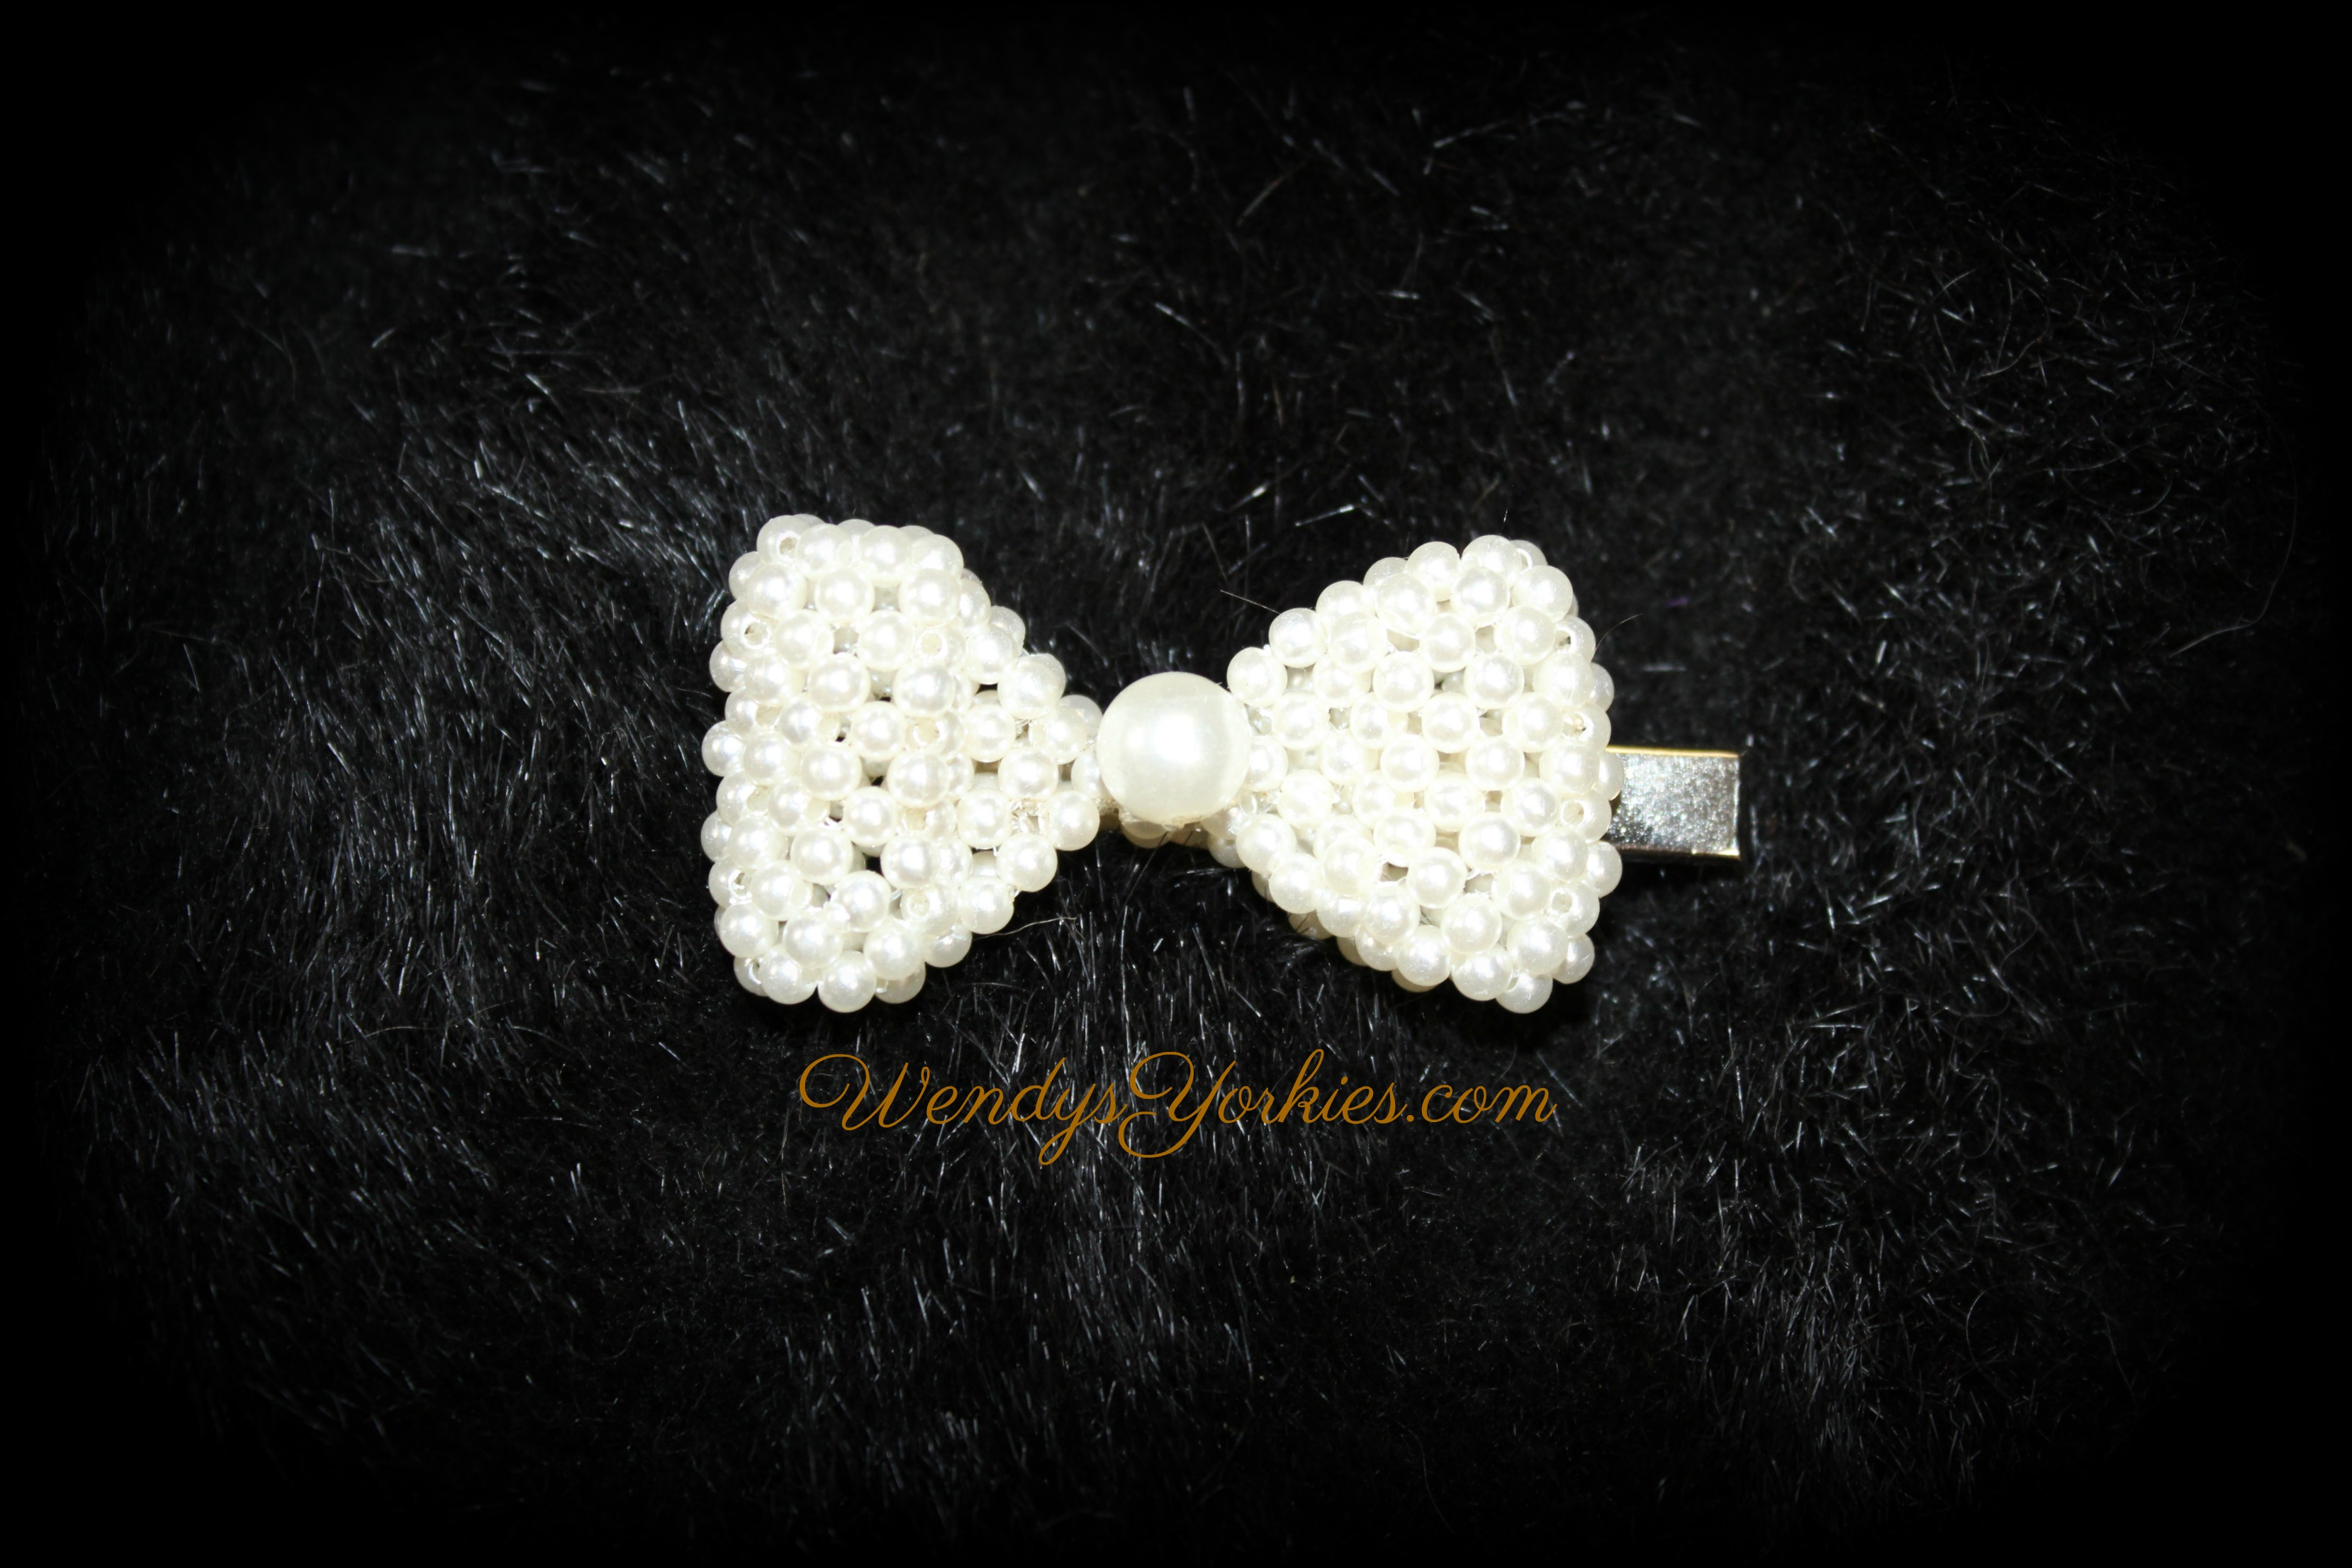 Pearl Dog bow, WendysYorkies.com